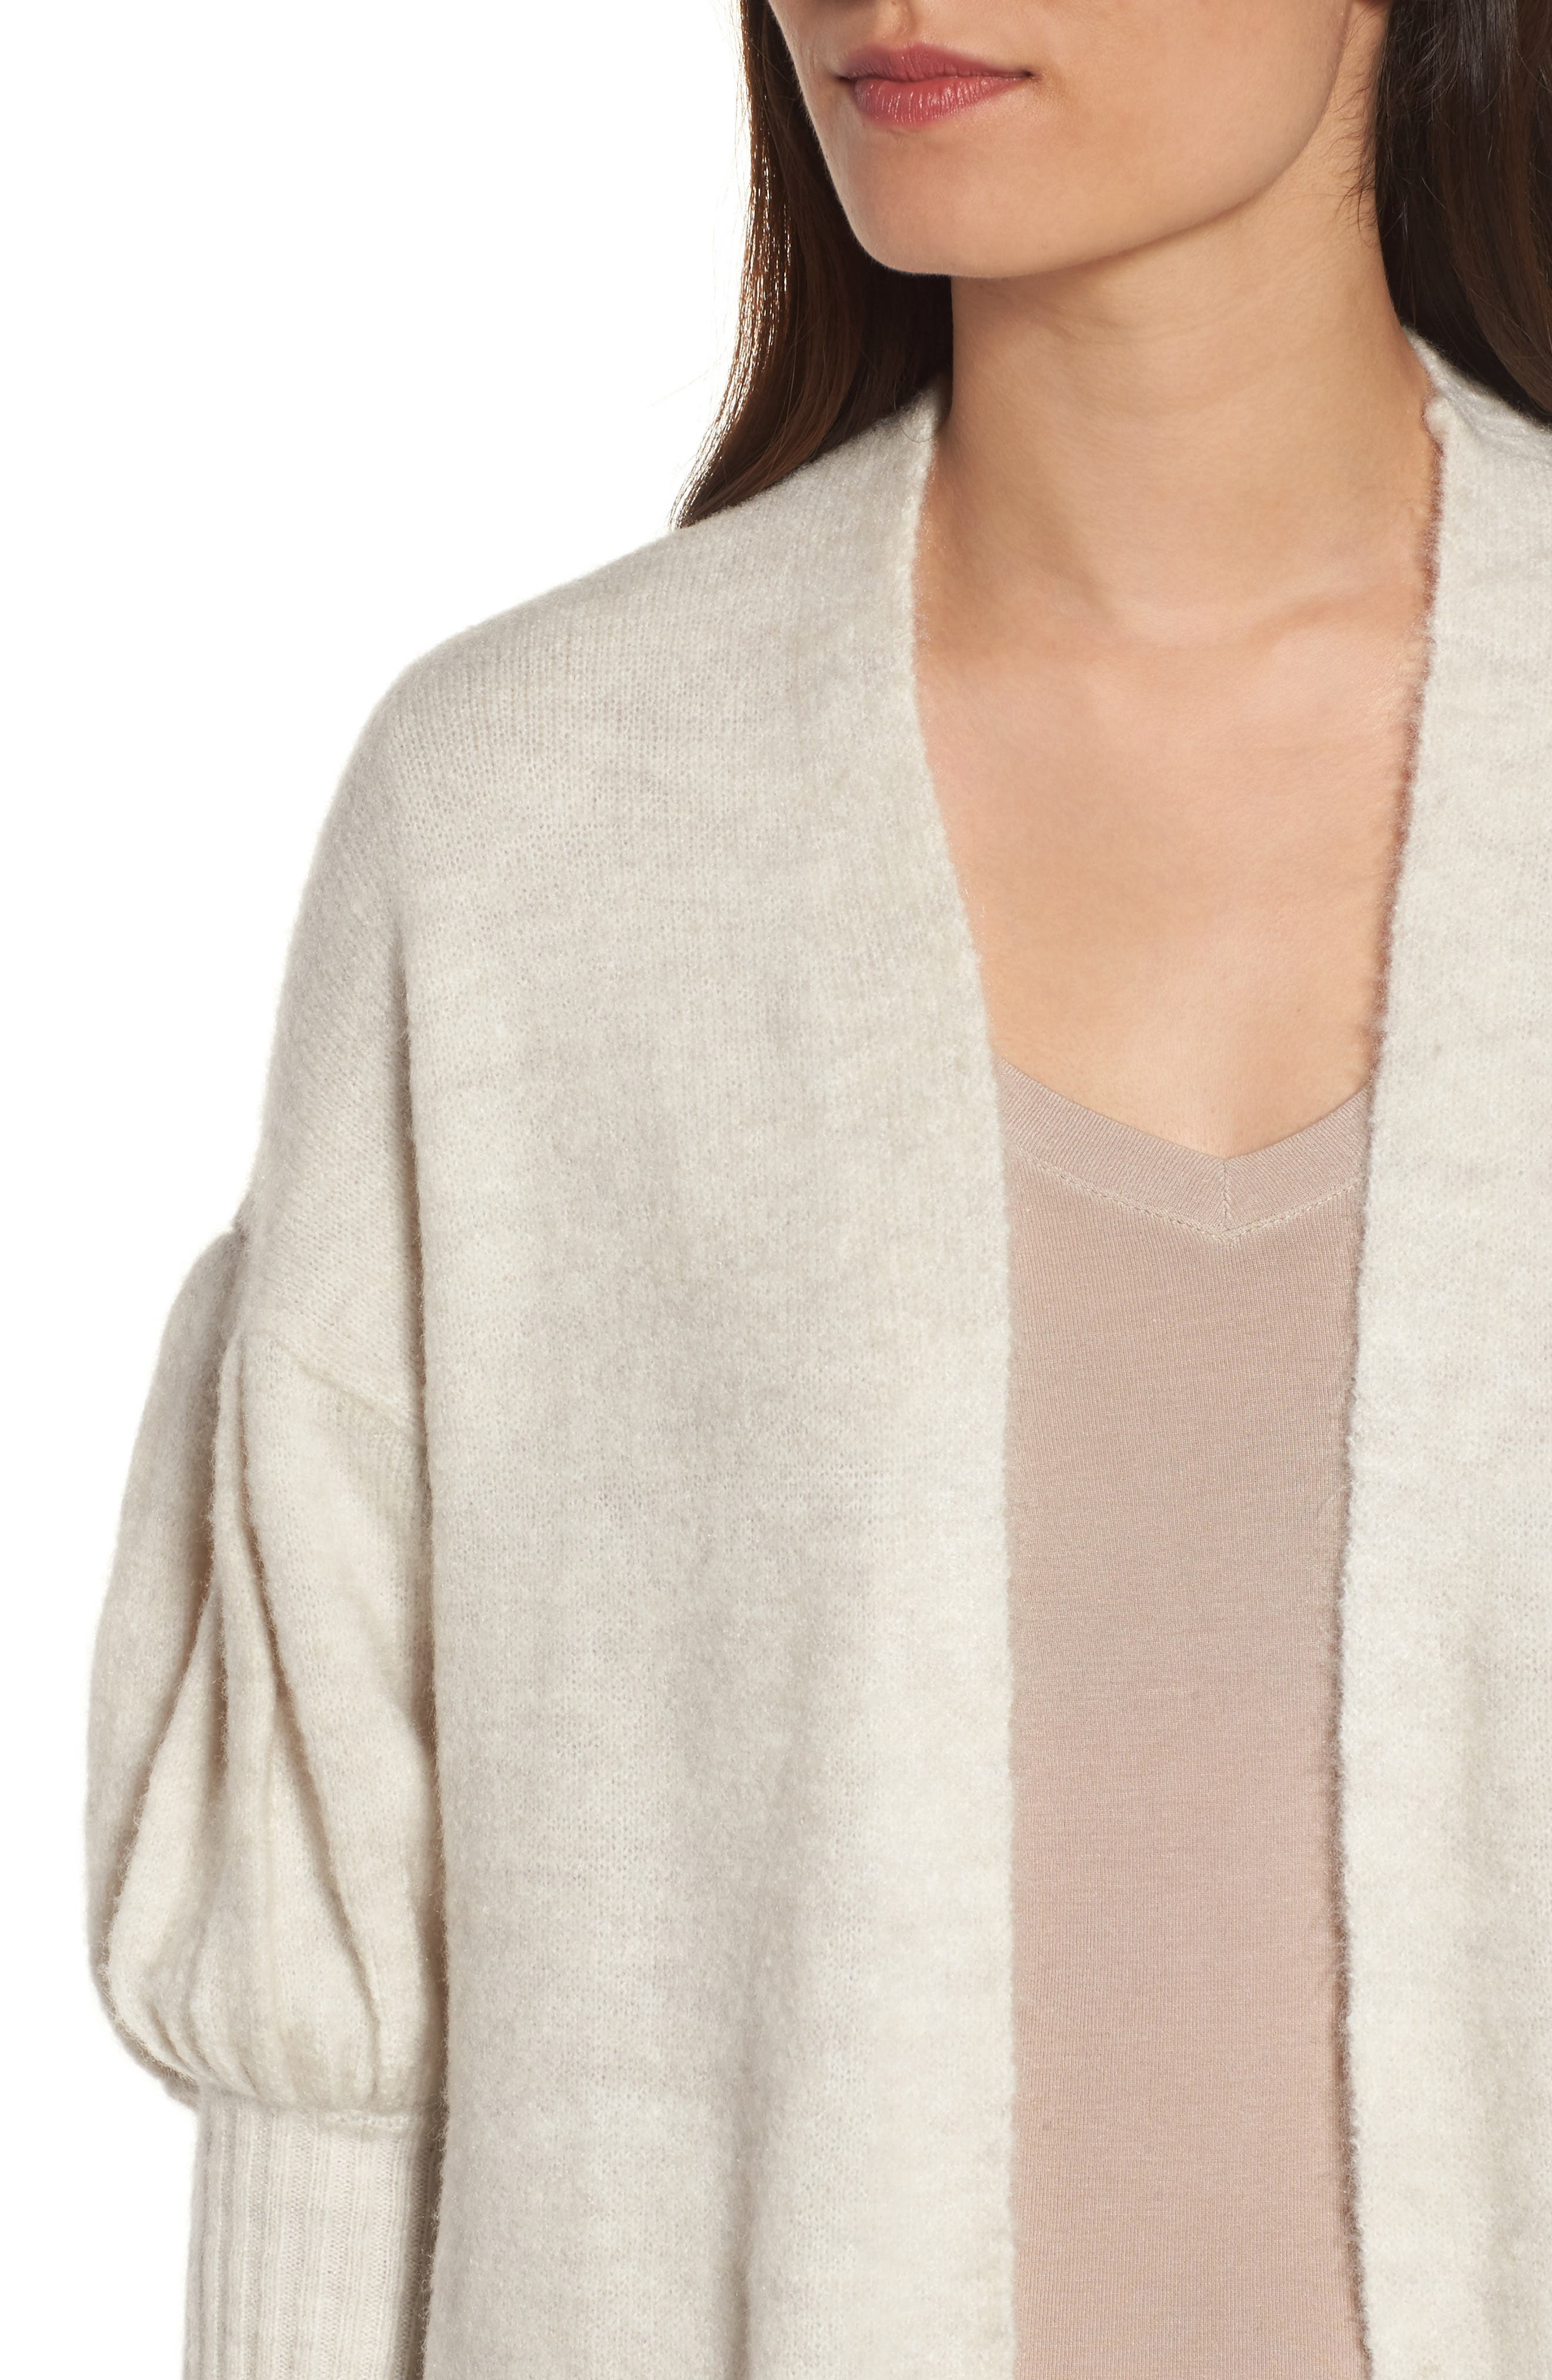 Cozy Cardigan,                             Alternate thumbnail 4, color,                             Ivory Pristine